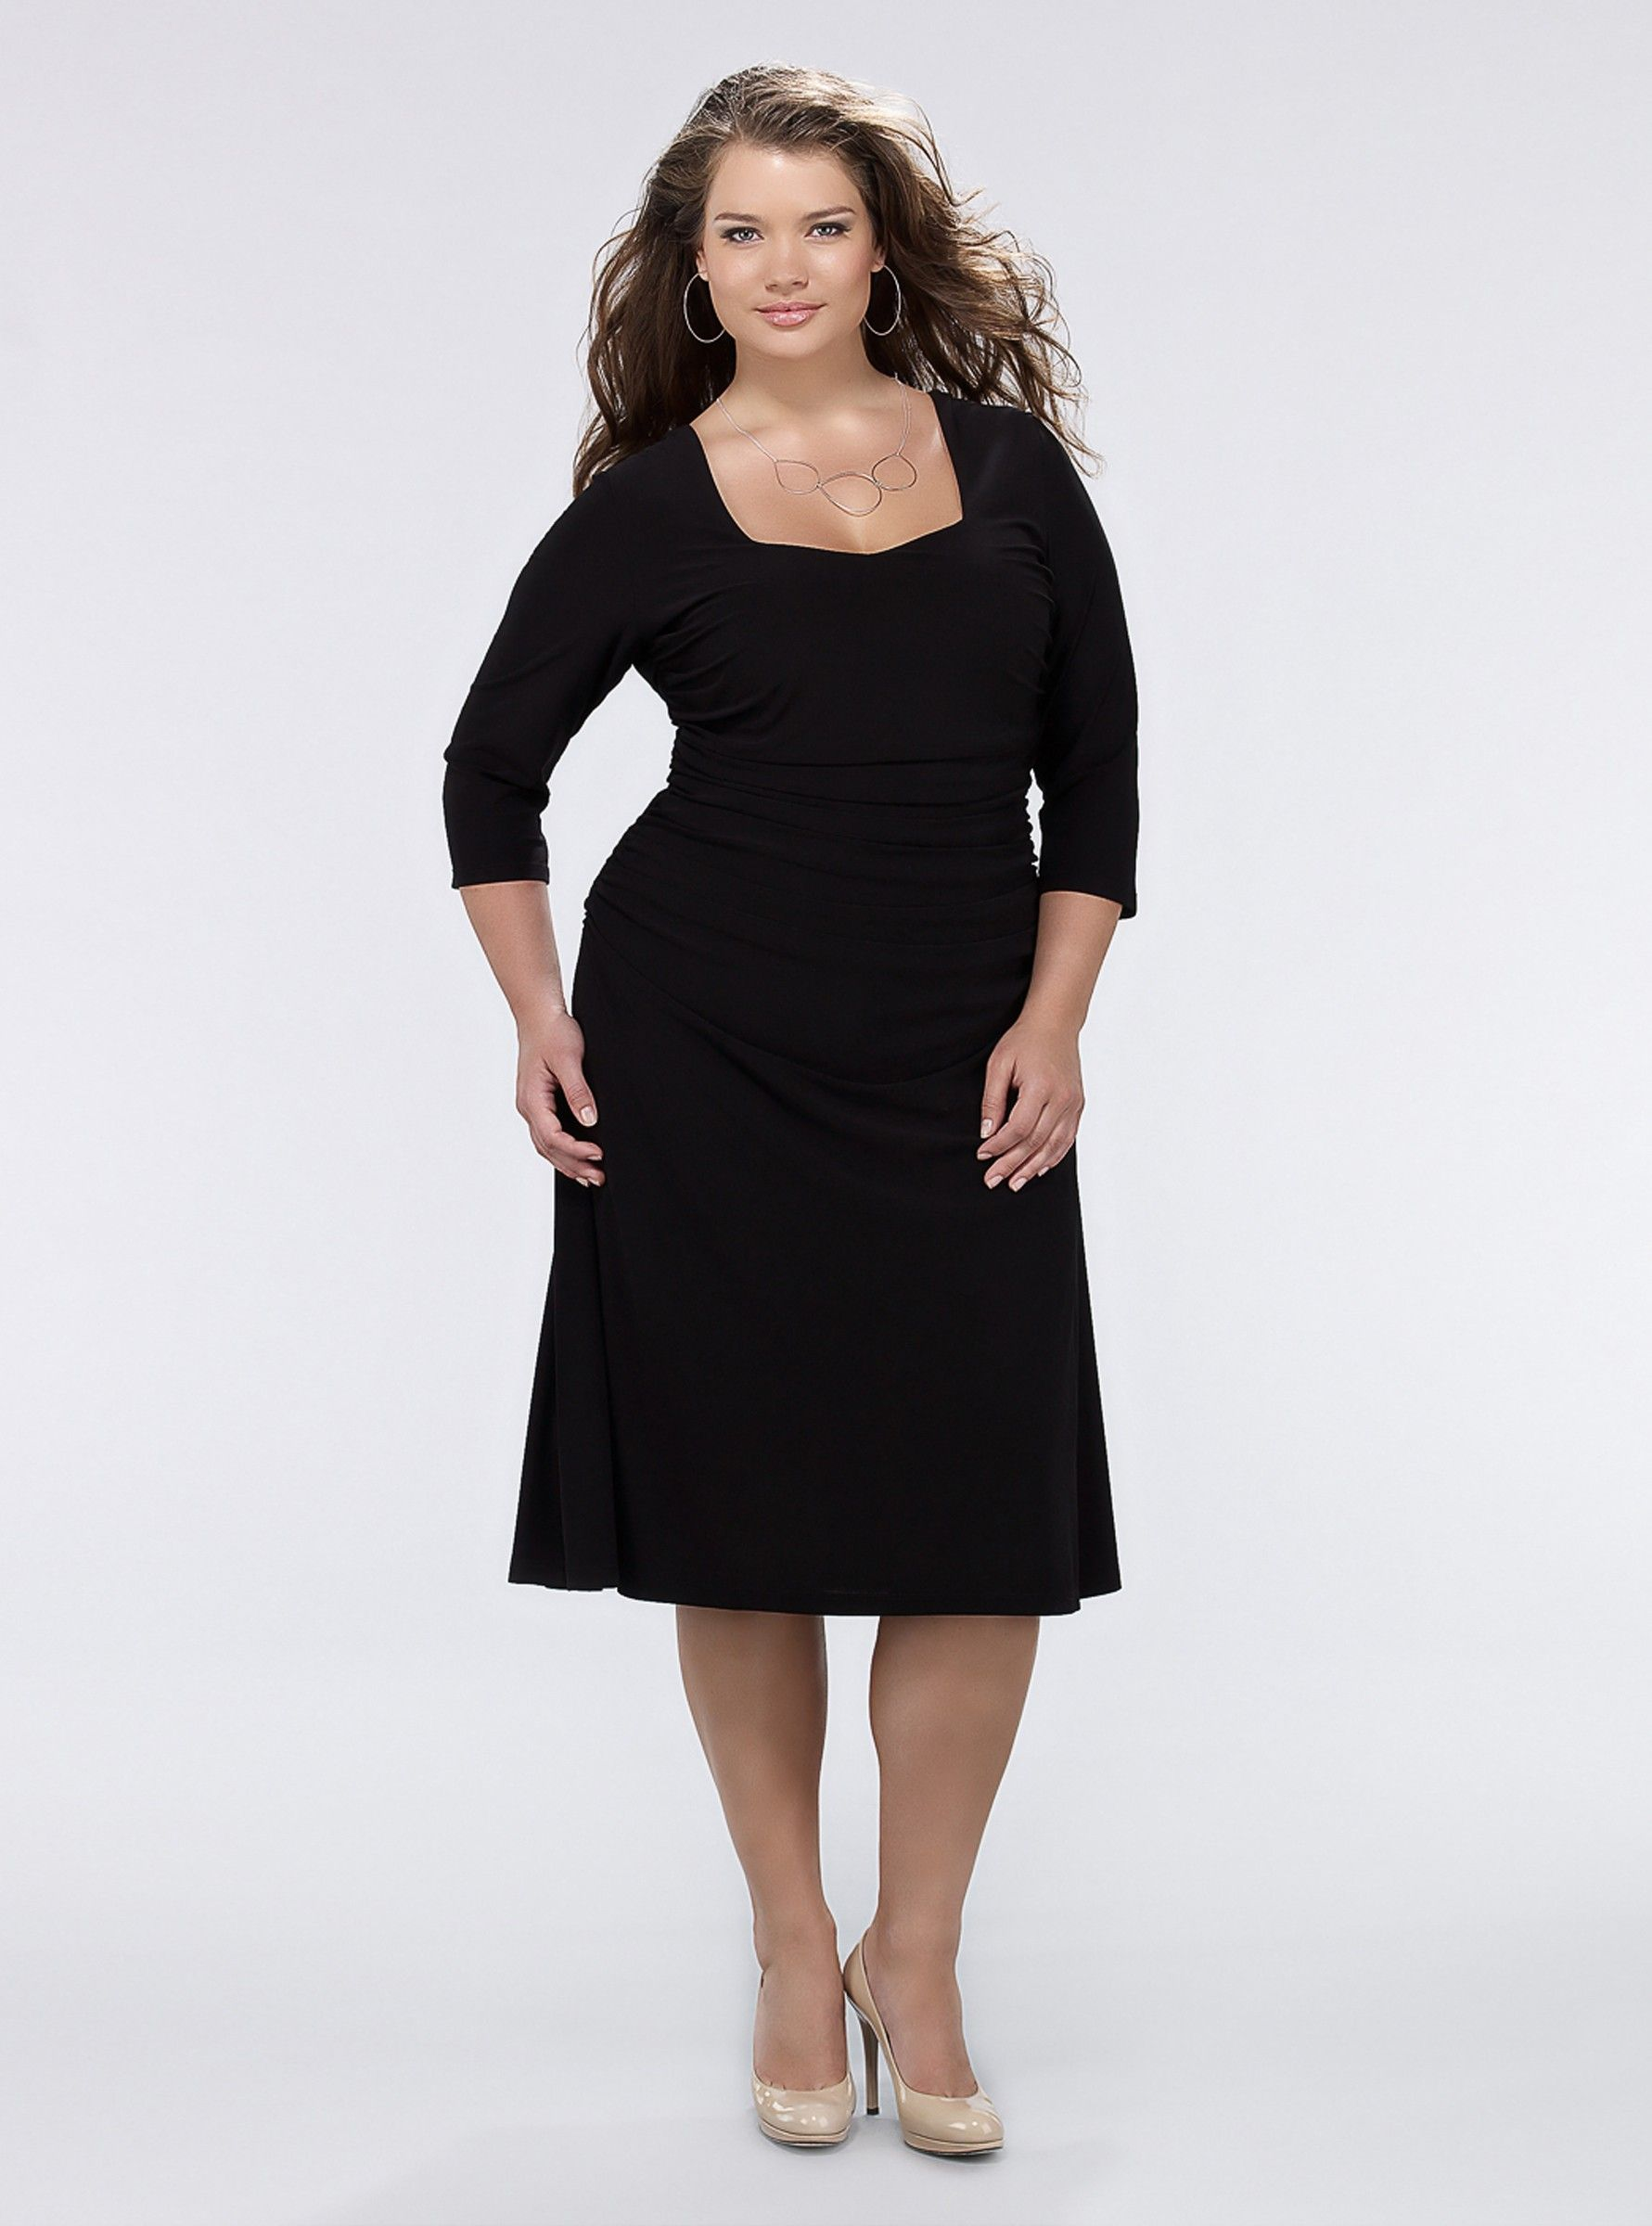 Kiyonna Flaunt Cocktail Dress Black, a Short Dress for Women ...